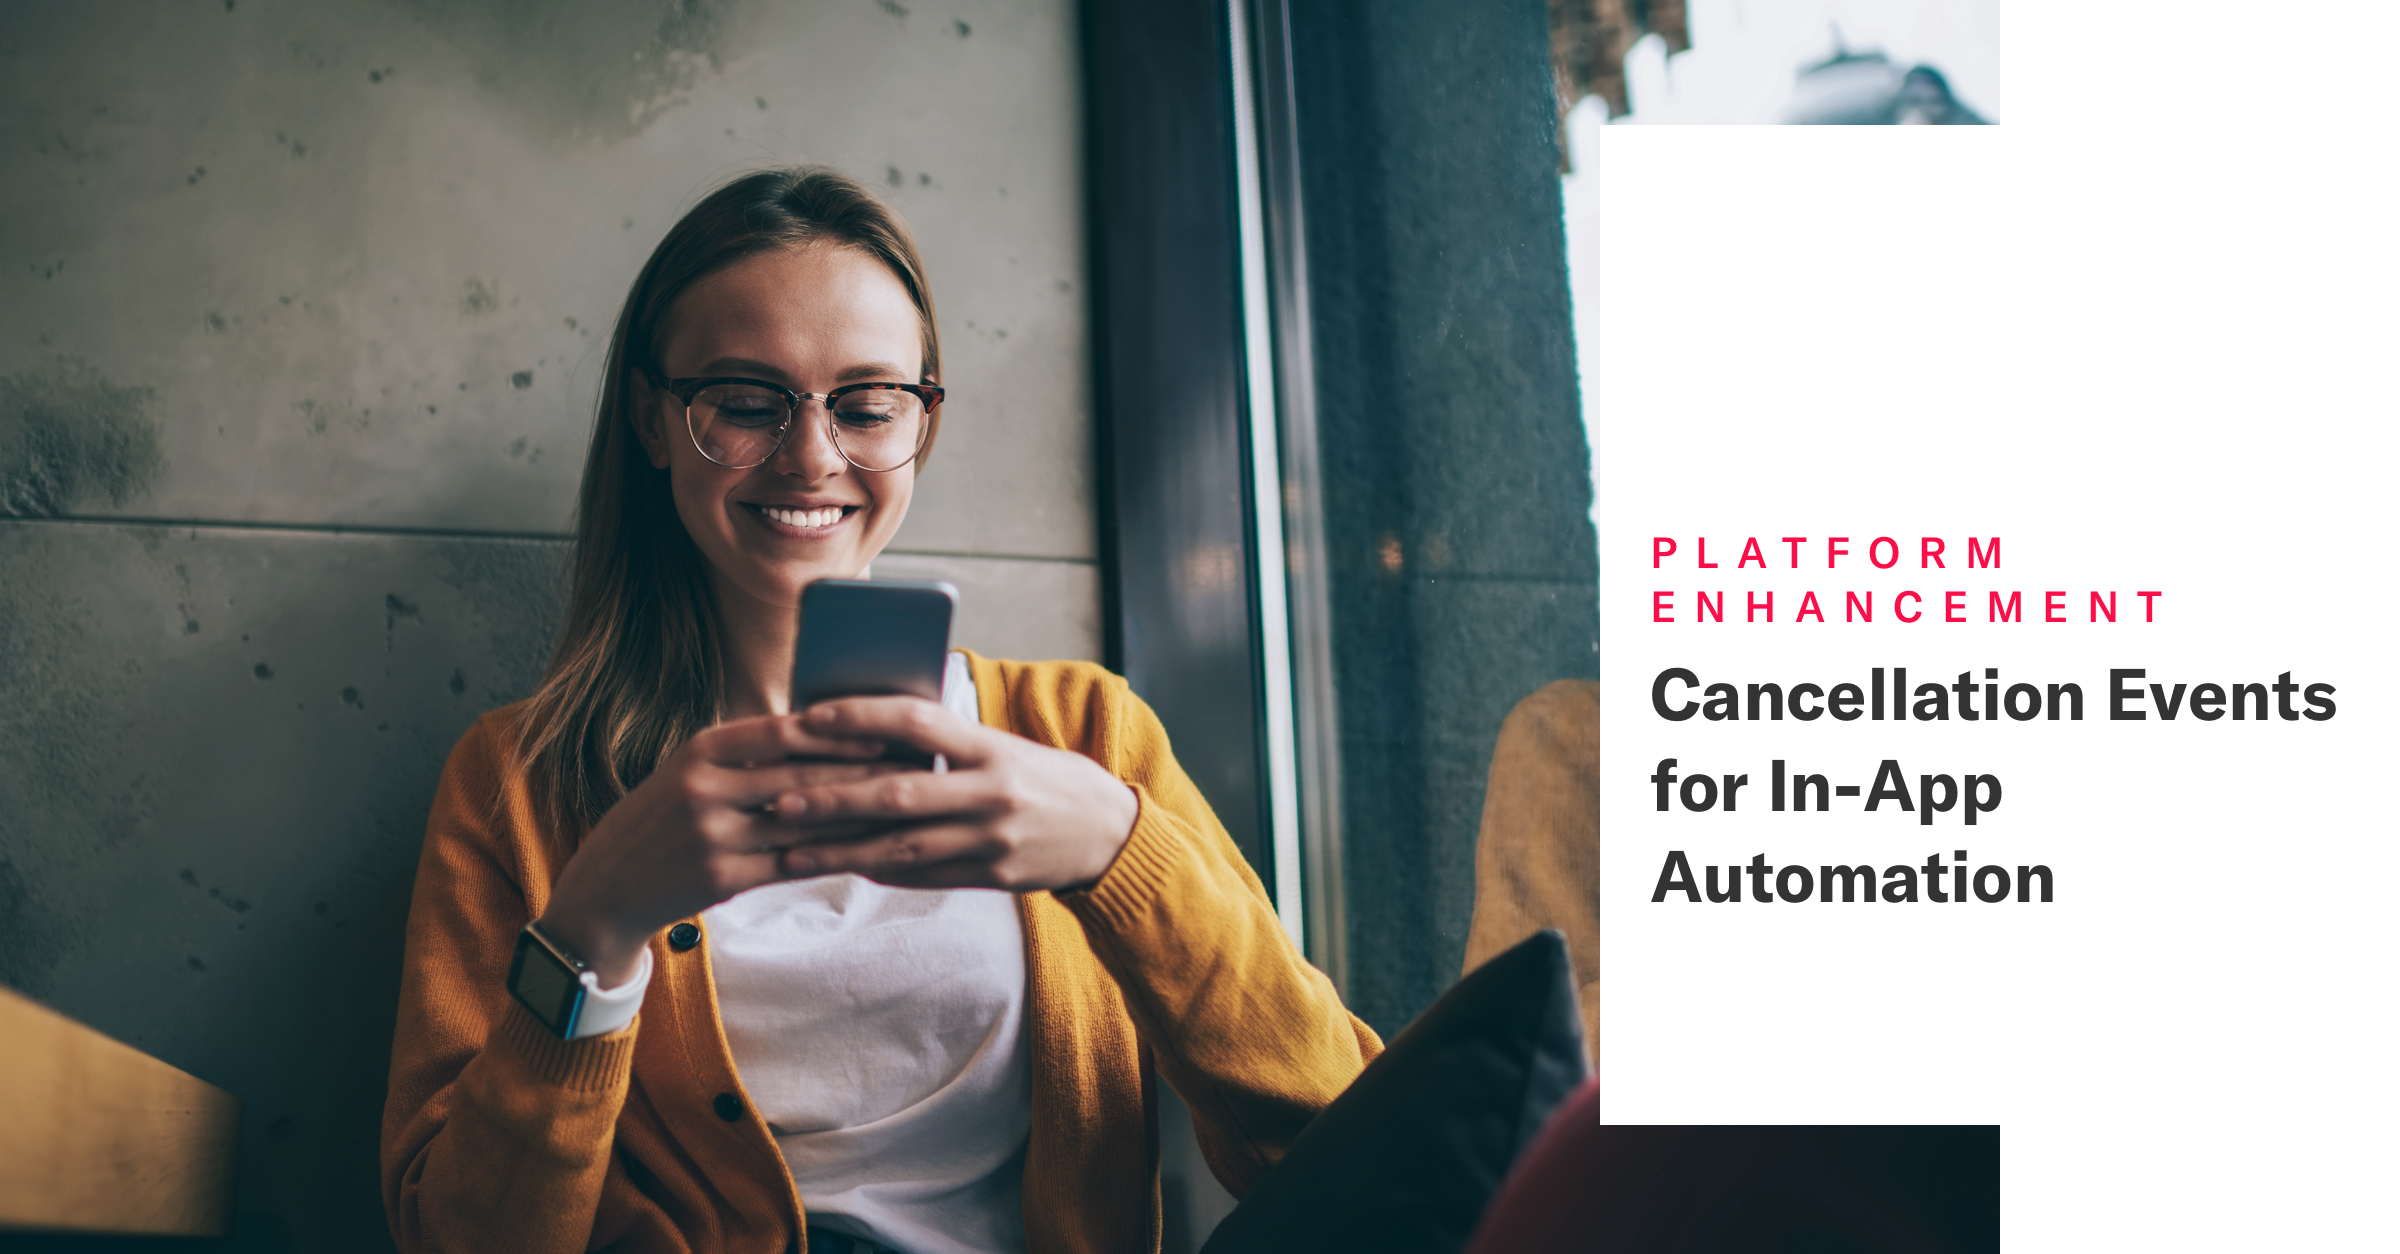 Cancellation Events for In-App Automation